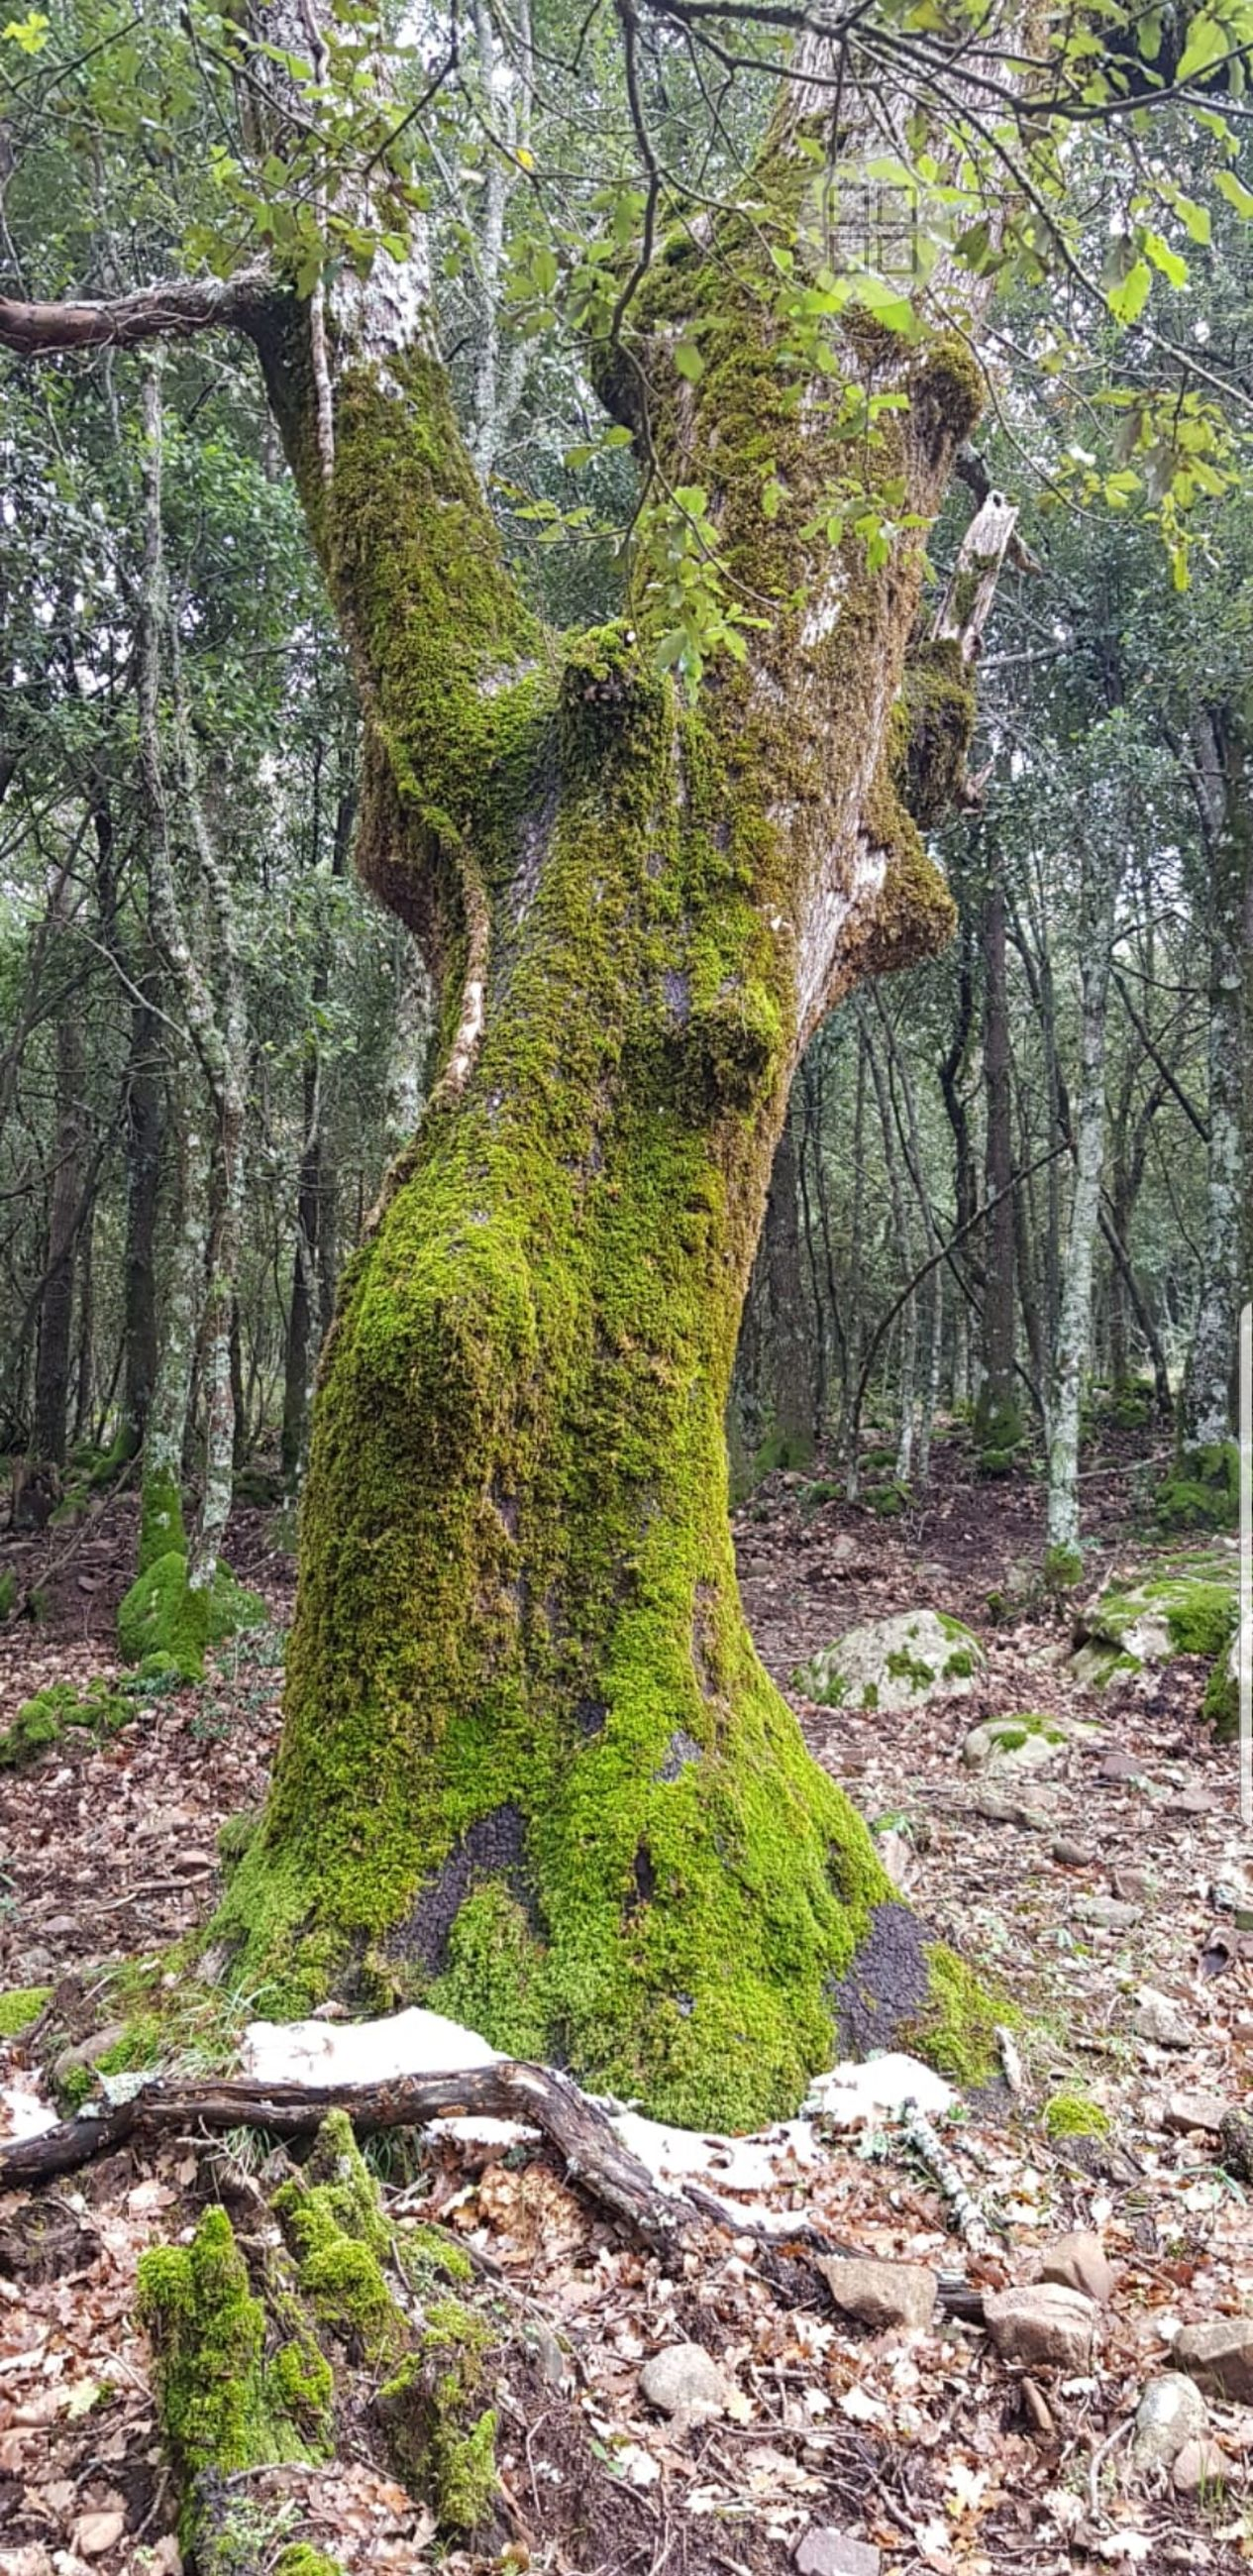 tree, plant, forest, land, tree trunk, trunk, tranquility, growth, beauty in nature, nature, no people, scenics - nature, day, tranquil scene, woodland, green color, moss, non-urban scene, environment, outdoors, rainforest, bark, flowing water